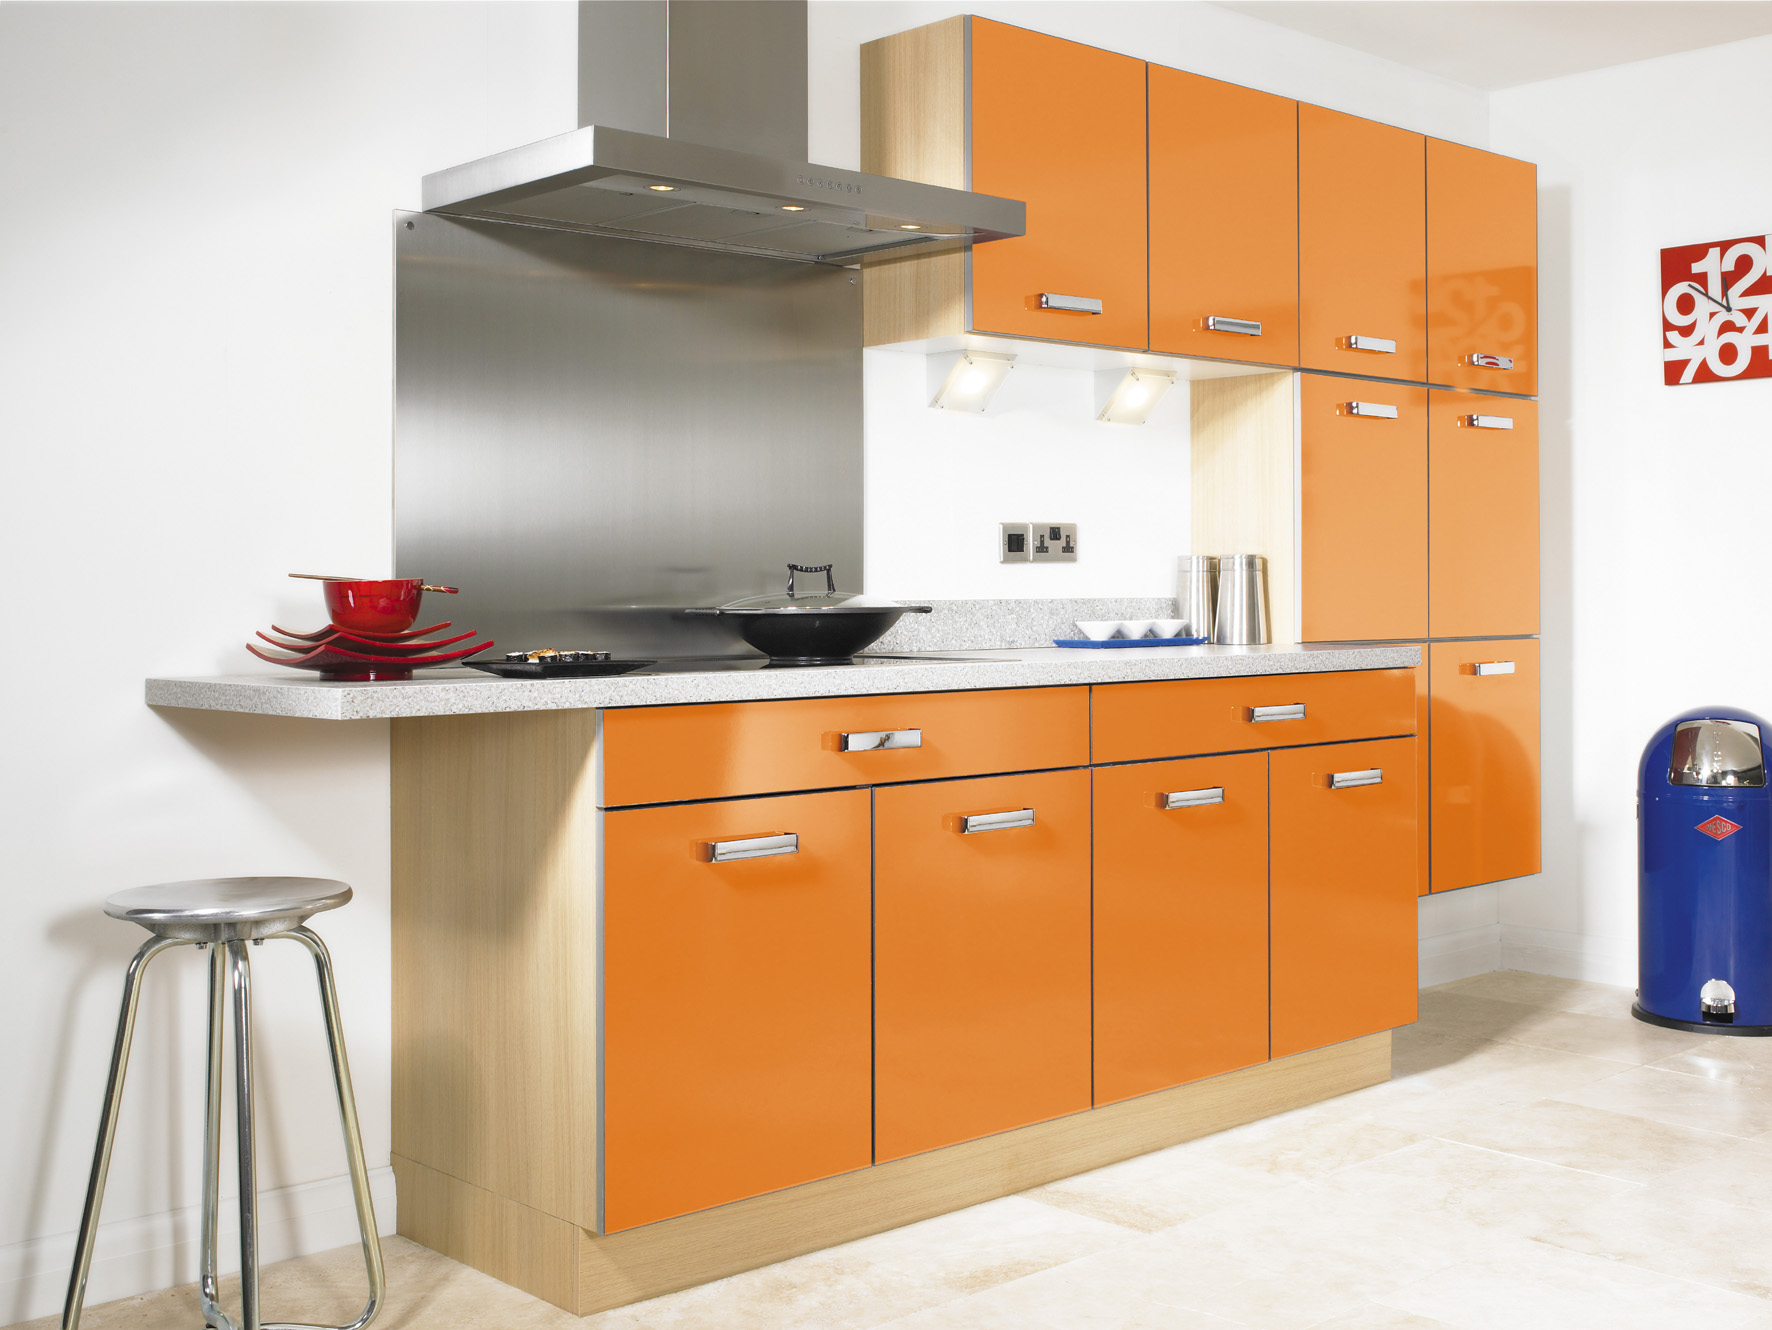 Fabulous Orange Kitchen Design Ideas 1772 x 1330 · 364 kB · jpeg